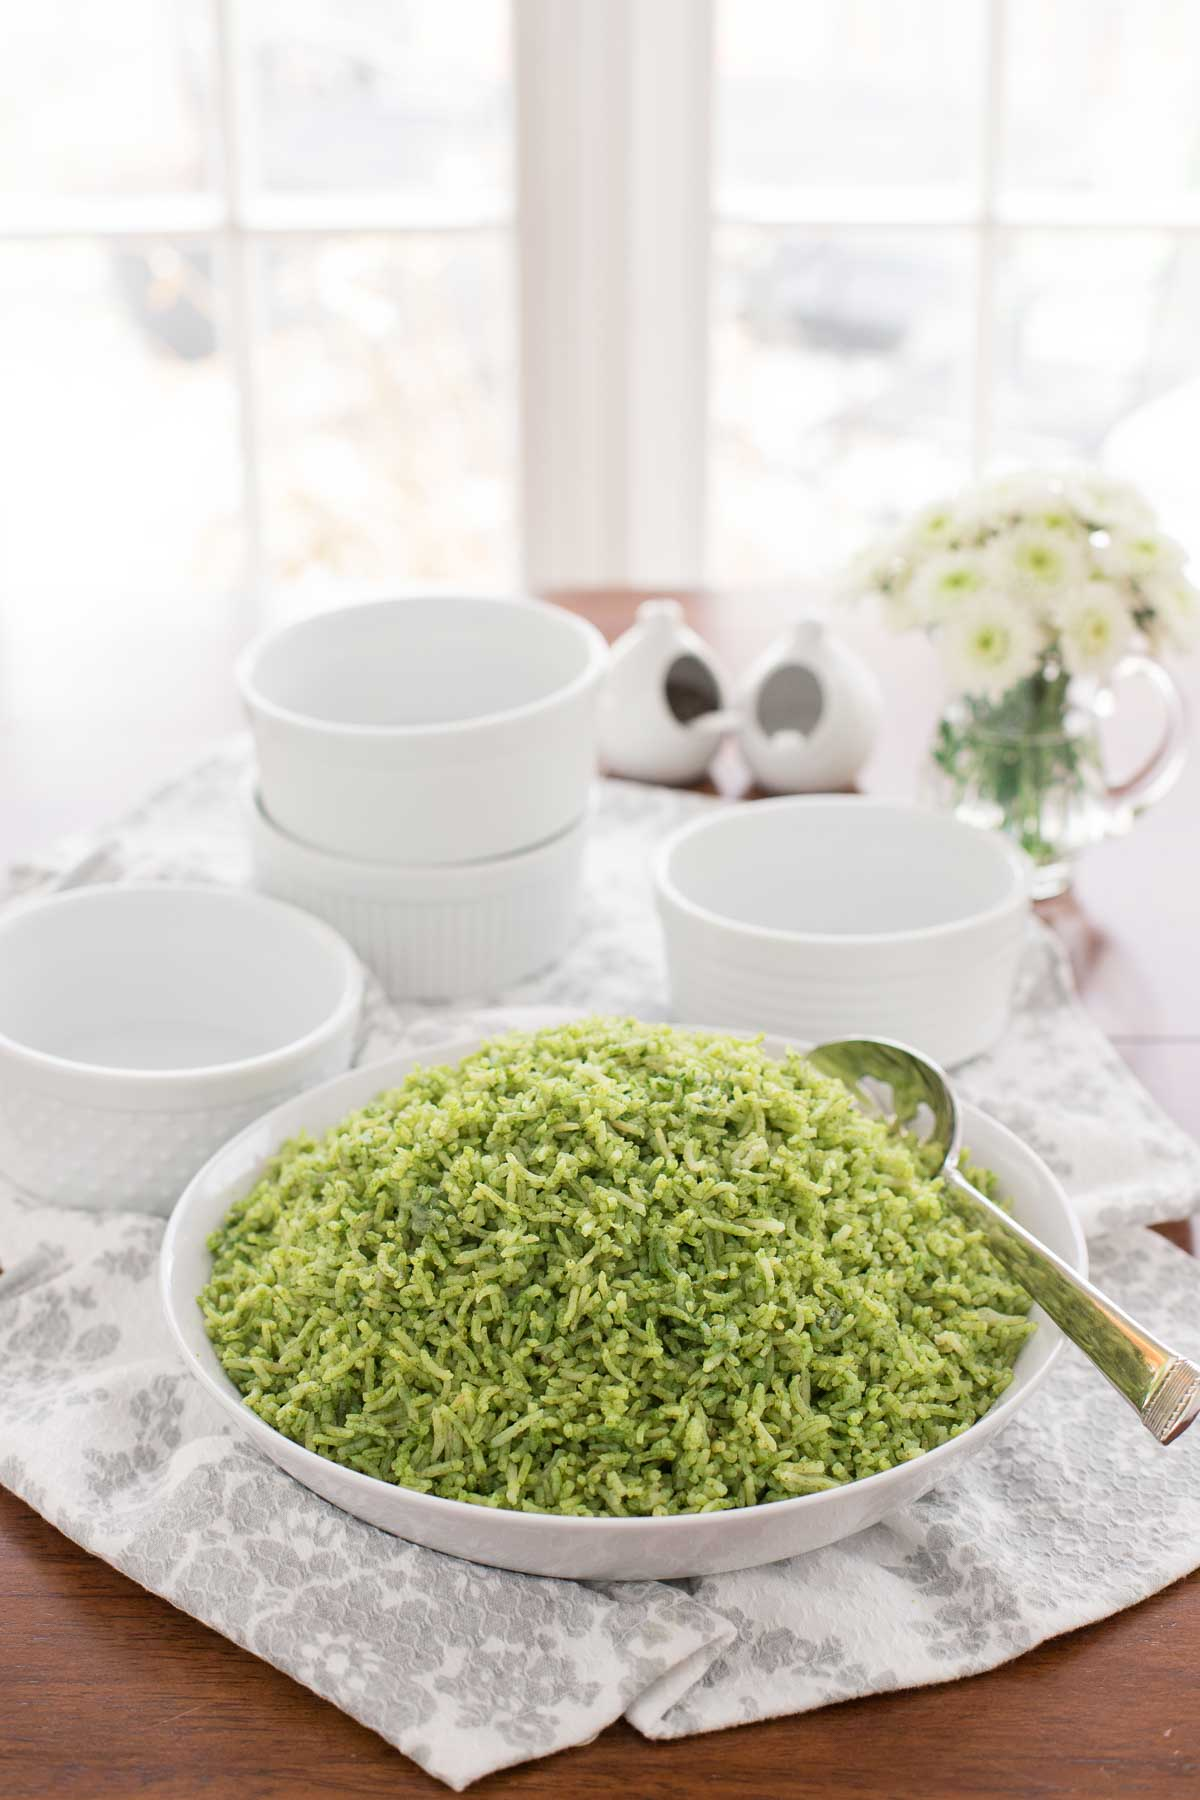 Table photo of a dish of Cilantro Rice (Arroz Verde) surrounded by a table setting and bowls for serving the rice.